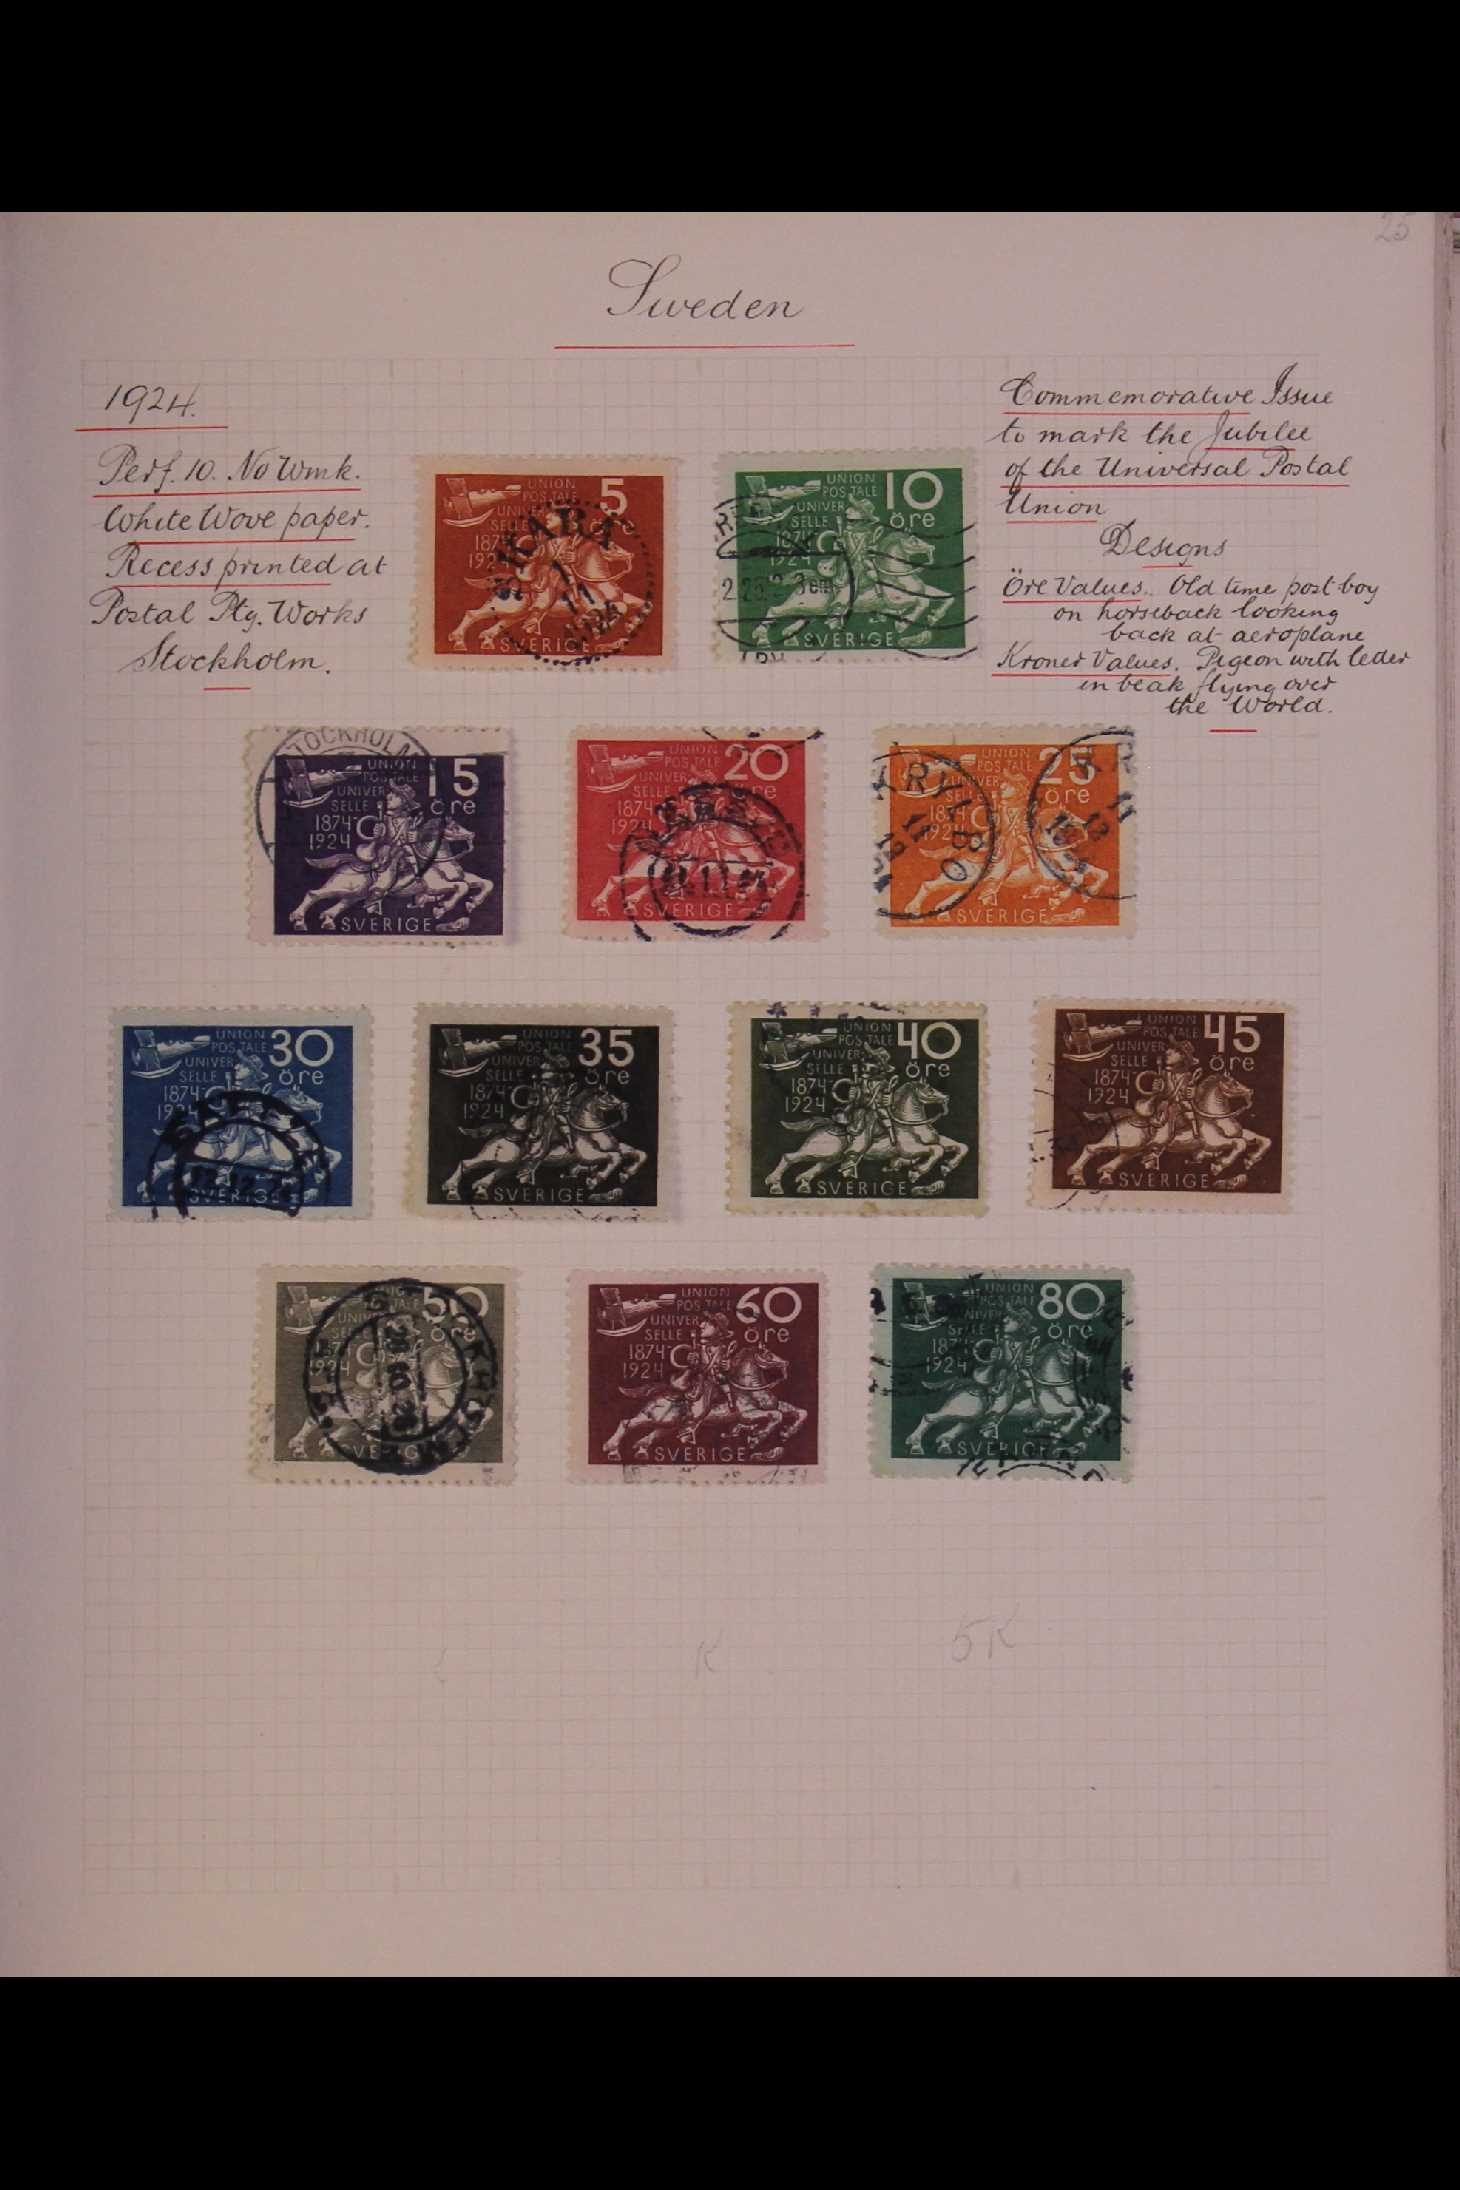 SWEDEN 1903-1966 USED COLLECTION incl. 1903 5k GPO, 1910-19 wmk Crown set, 1916 Landstorm surcharges - Image 9 of 12